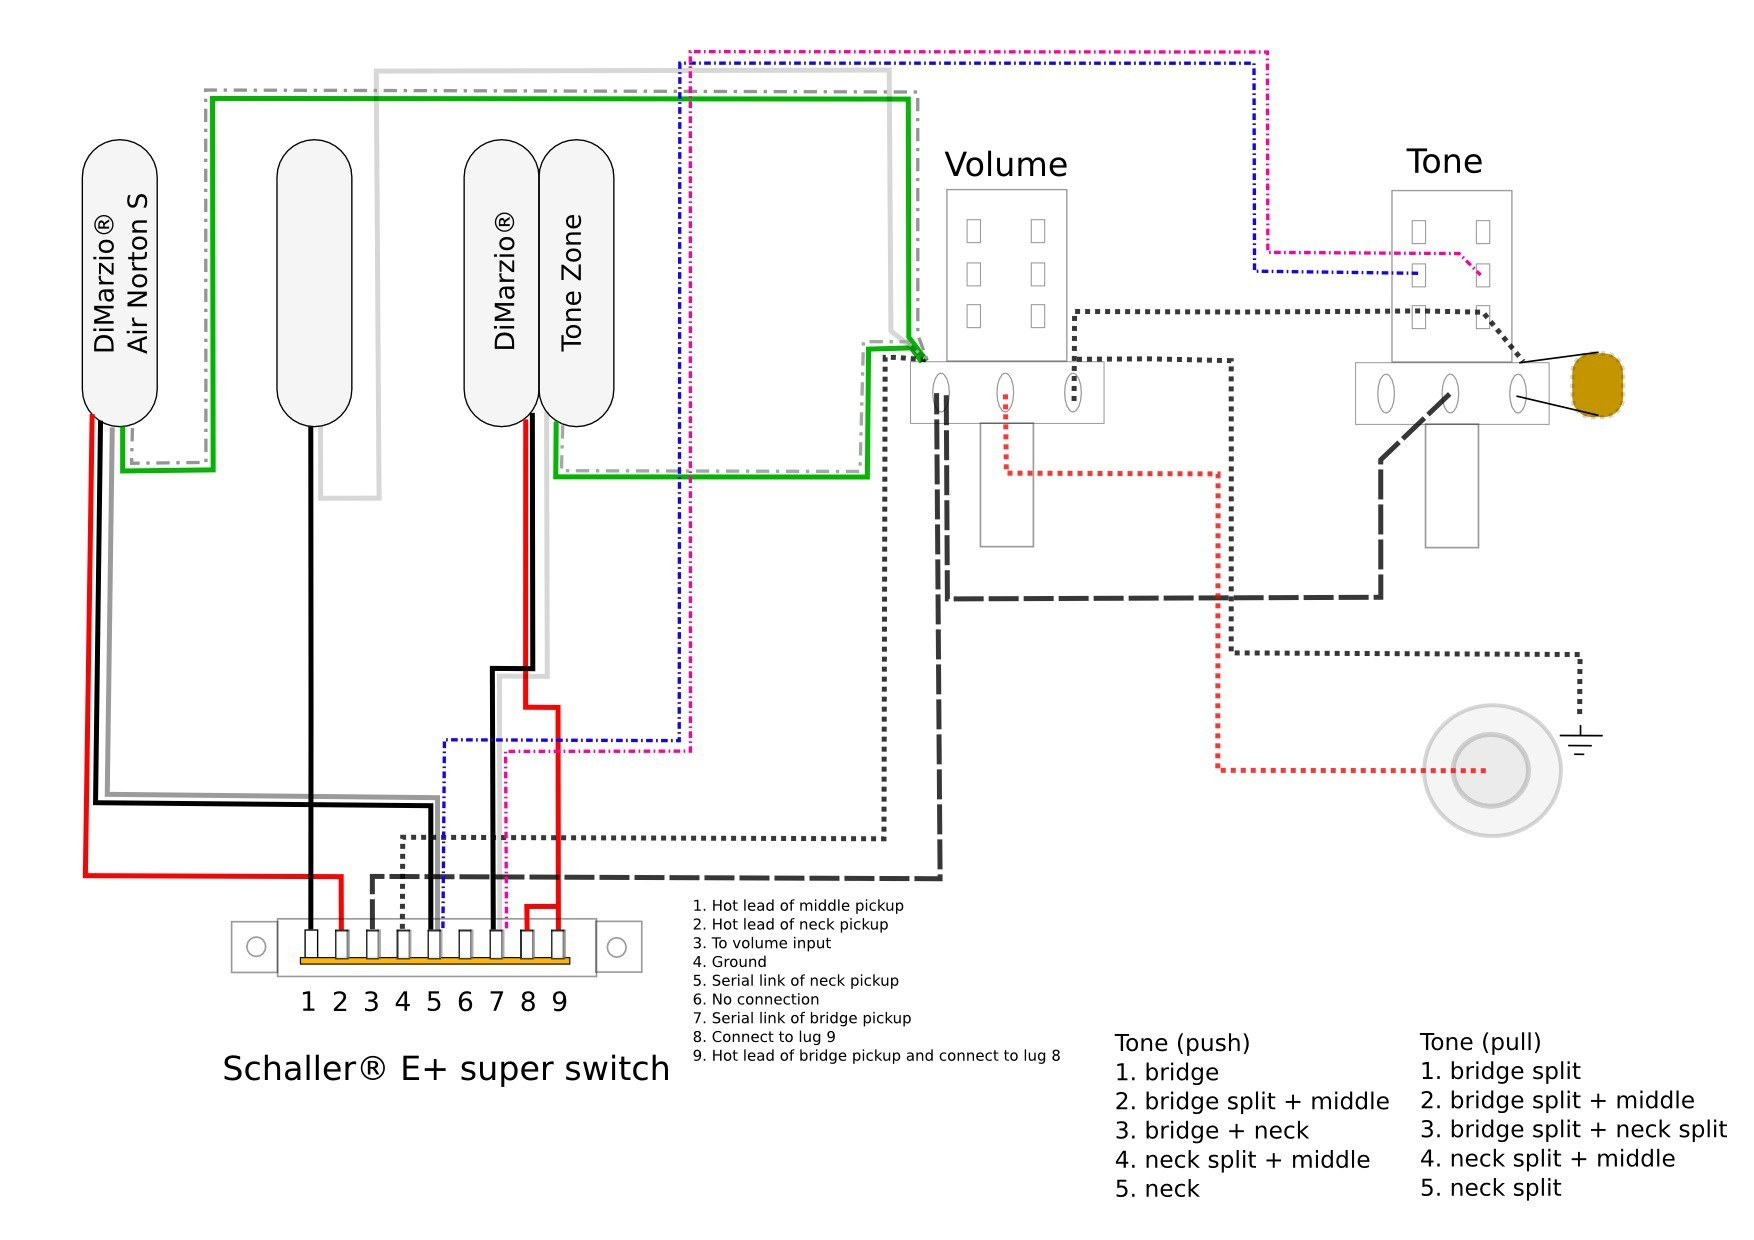 5 Way Switch Wiring Diagram Luxury Pickups Wiring Hsh Autosplit with A Standard 5 Way Switch